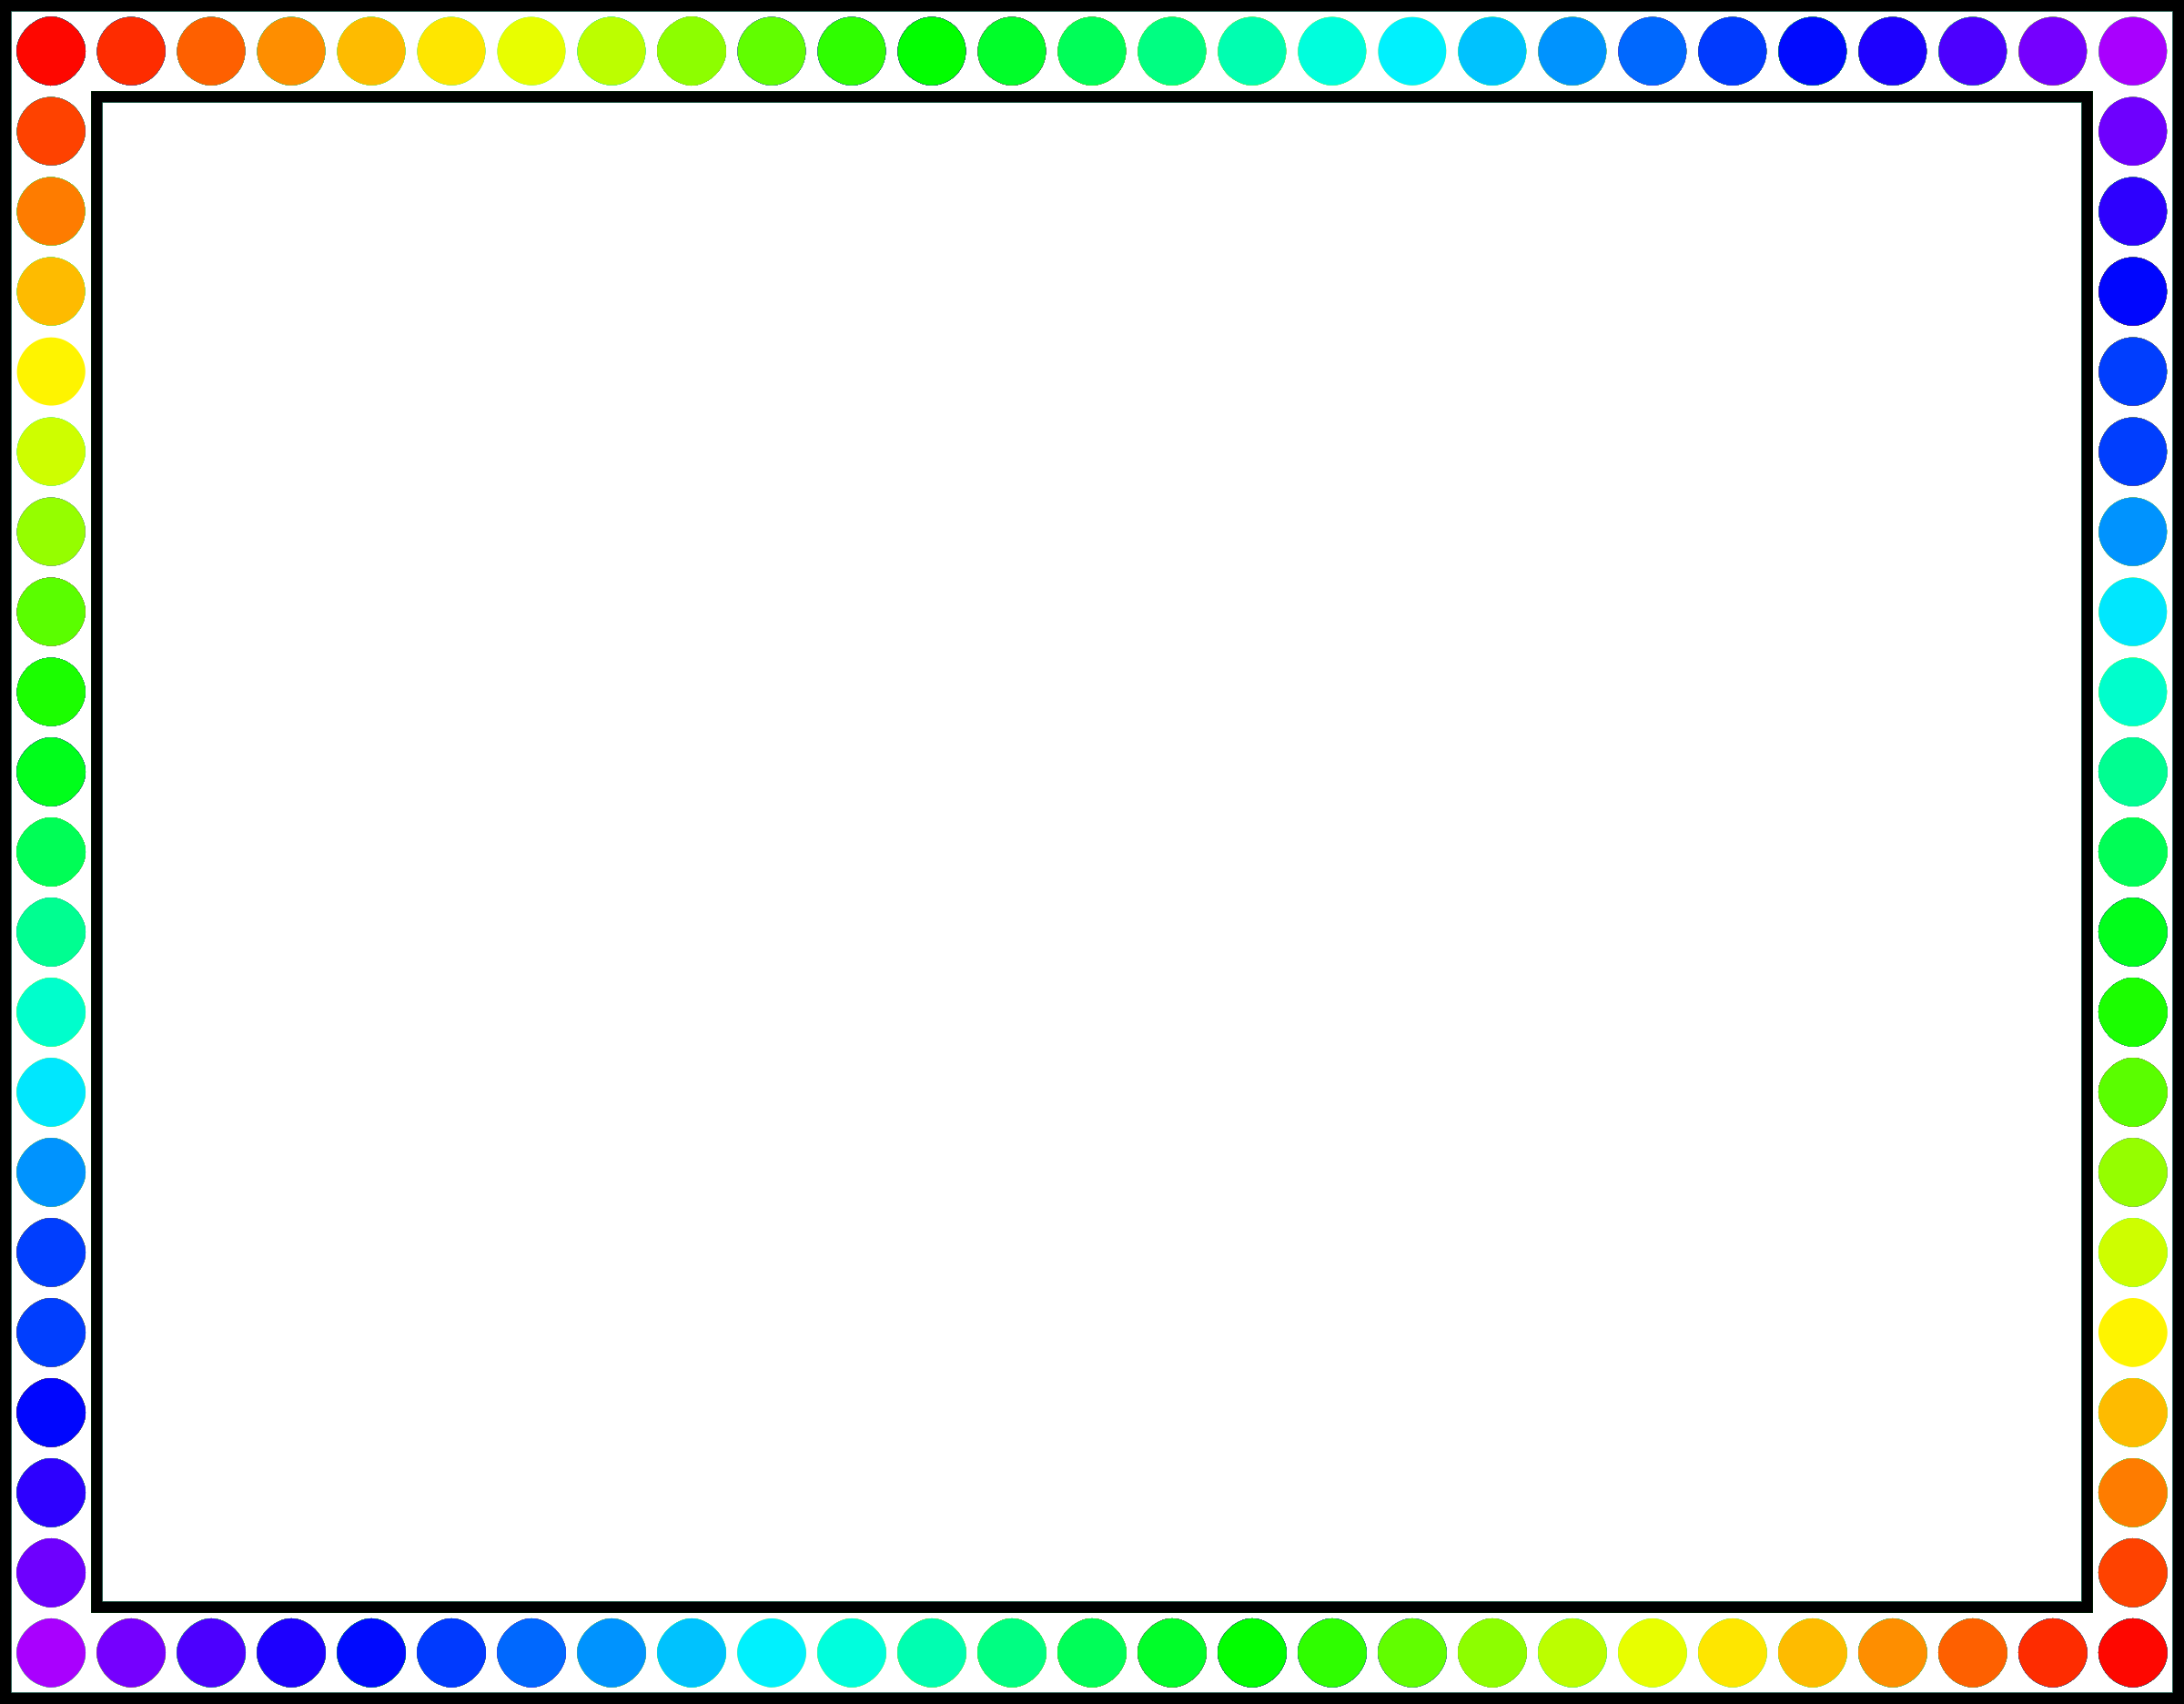 Border frame png #39753 - Free Icons and PNG Backgrounds